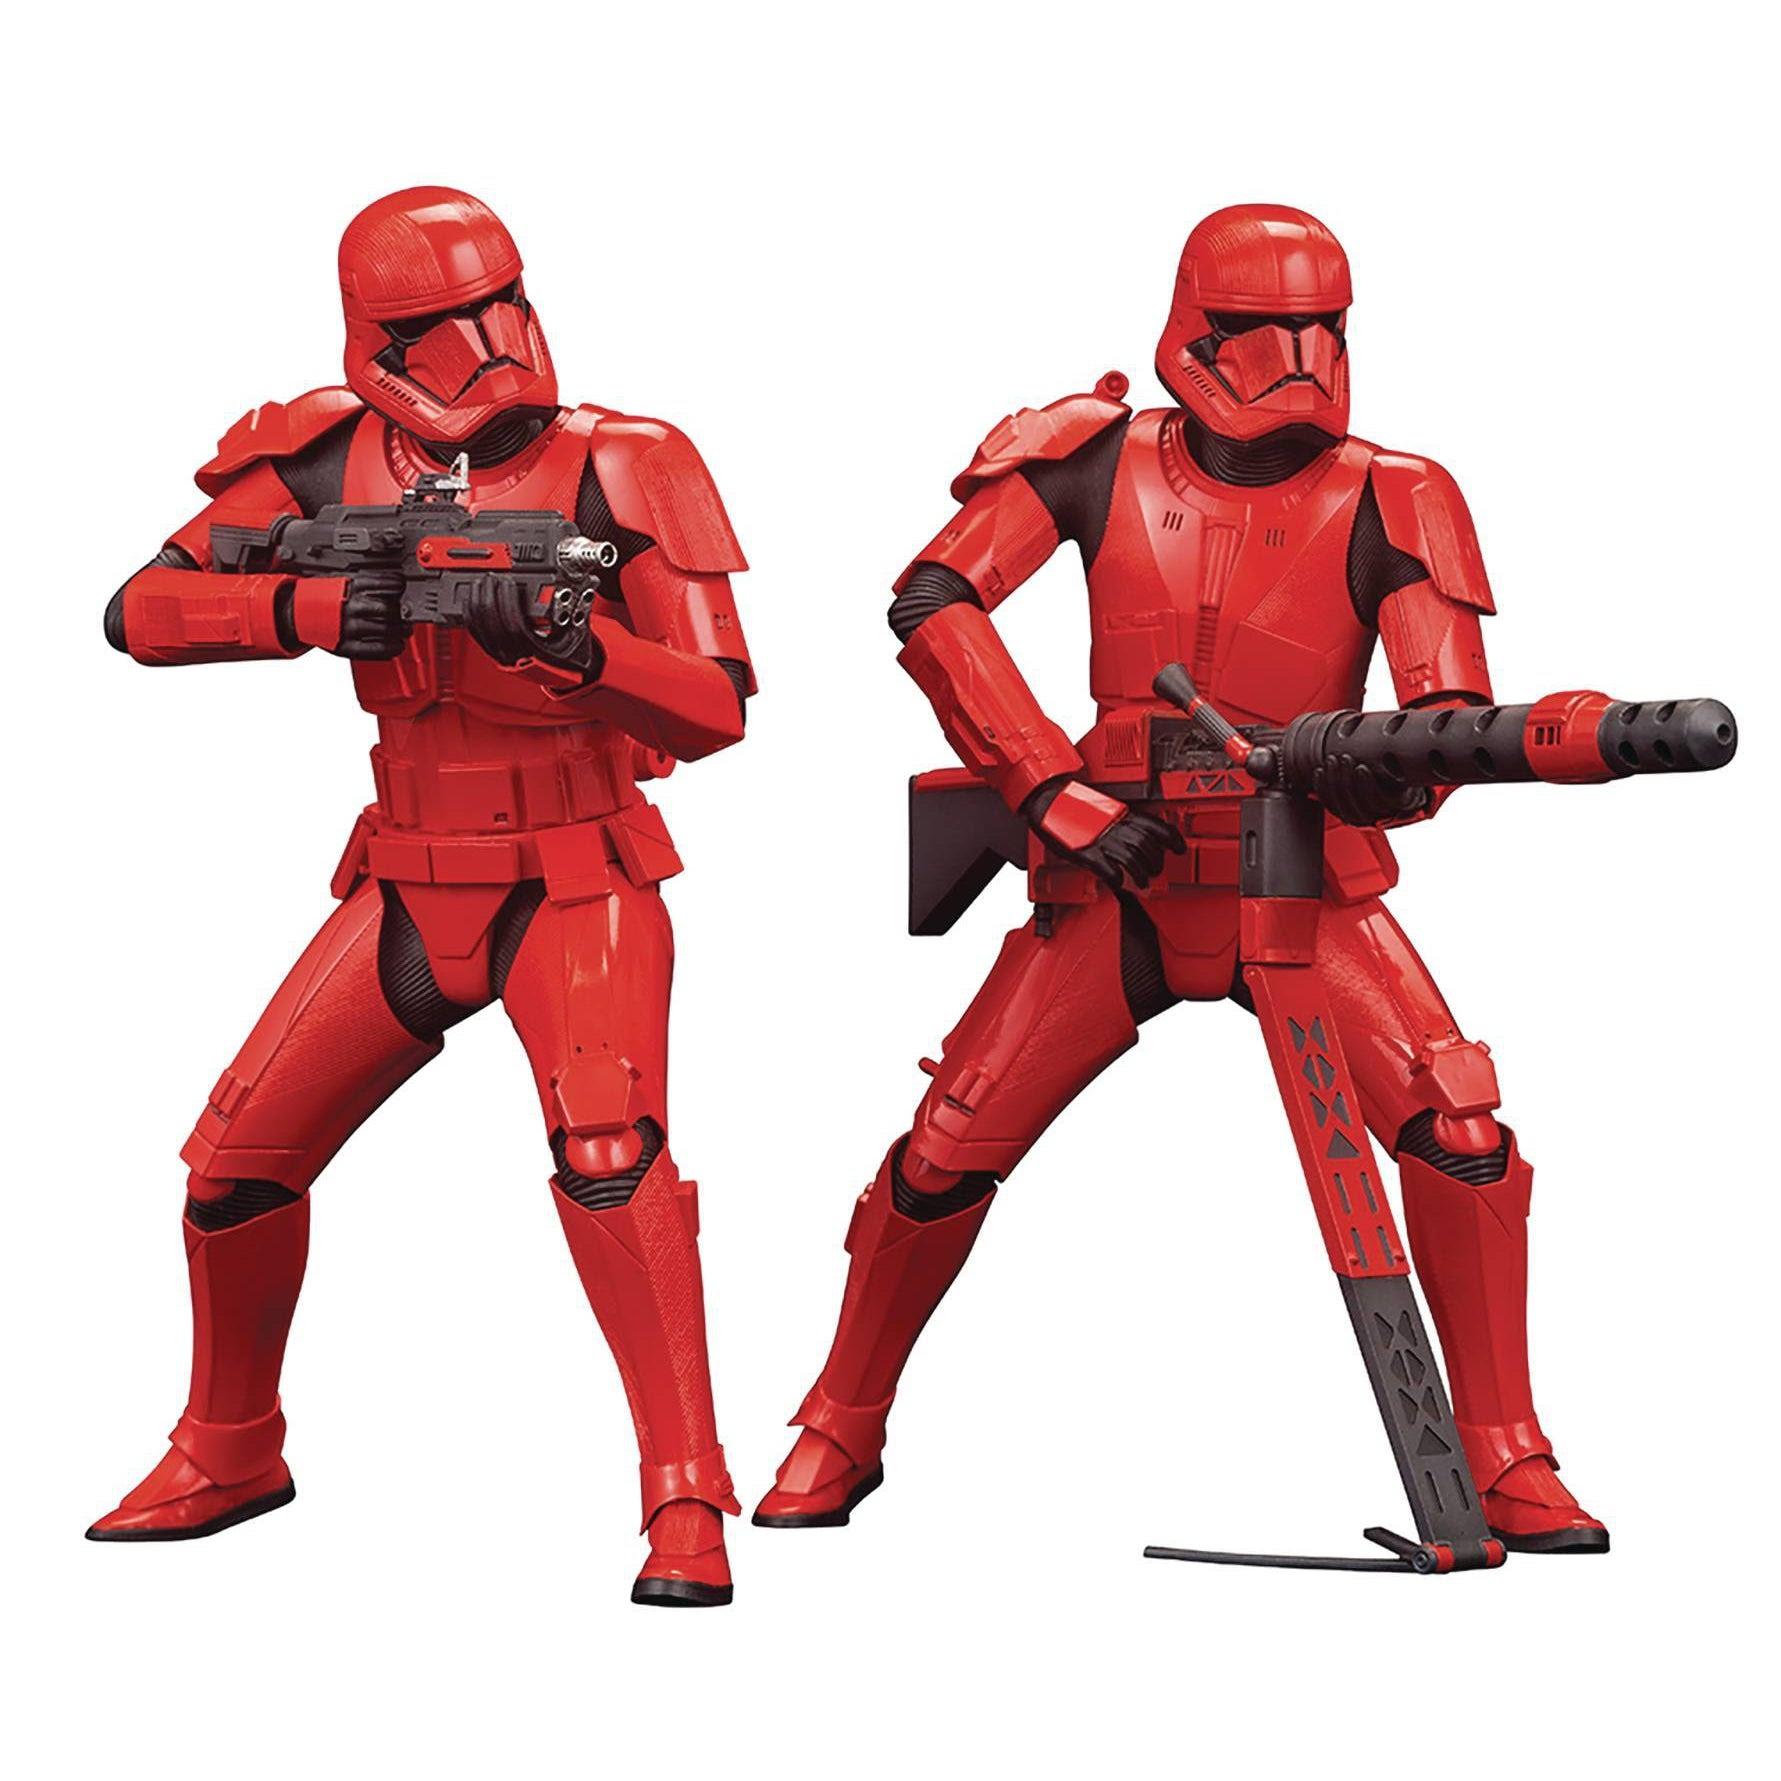 Image of Star Wars ArtFX+ Sith Trooper Statue Two-Pack (The Rise of Skywalker) - DECEMBER 2019